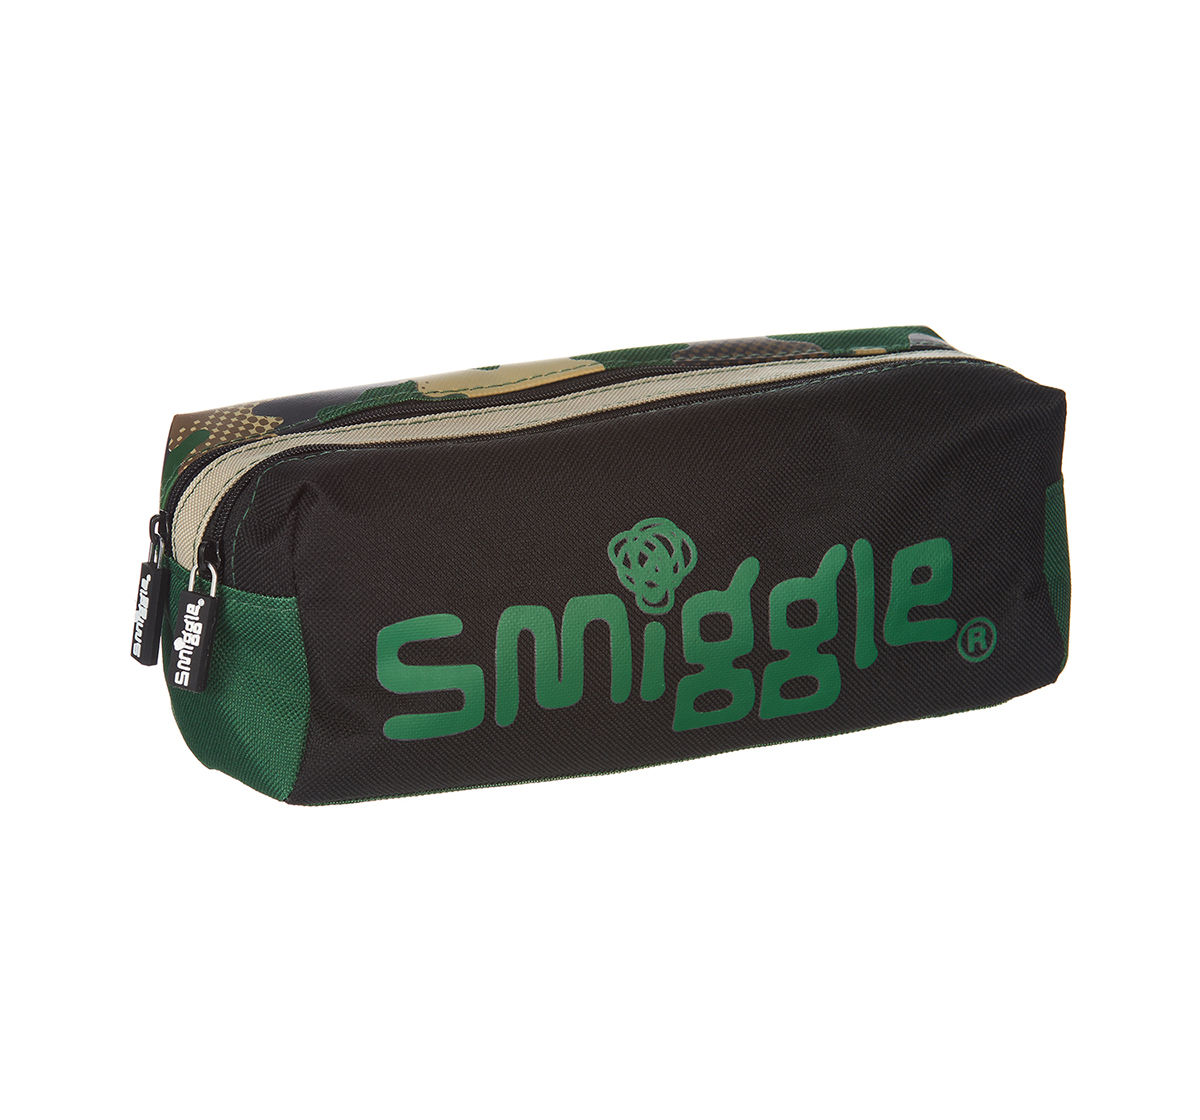 Smiggle   Smiggle Block Pencil Case with Two Zipped Compartments - Camouflage Print Bags for Kids age 3Y+ (Khaki)